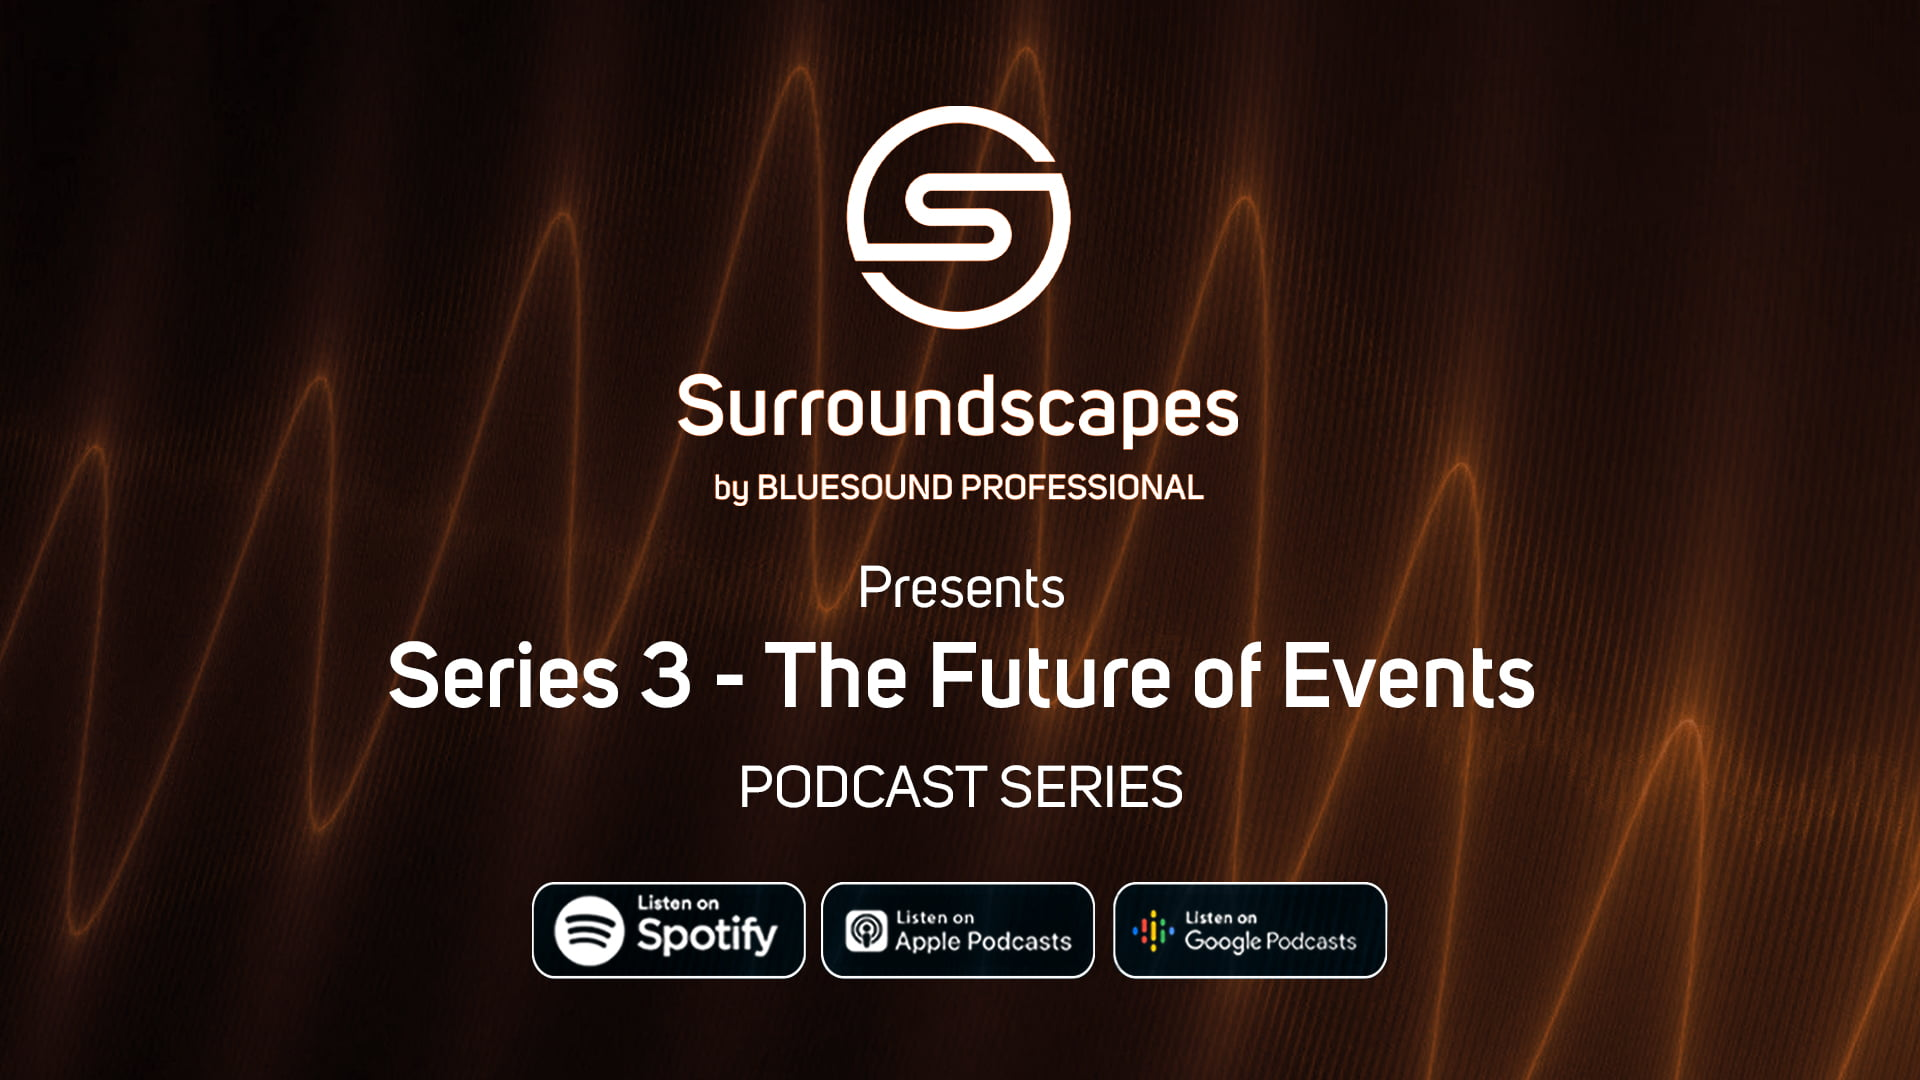 Bluesound Professional's 'Surroundscapes' Podcast Returns for Series 3